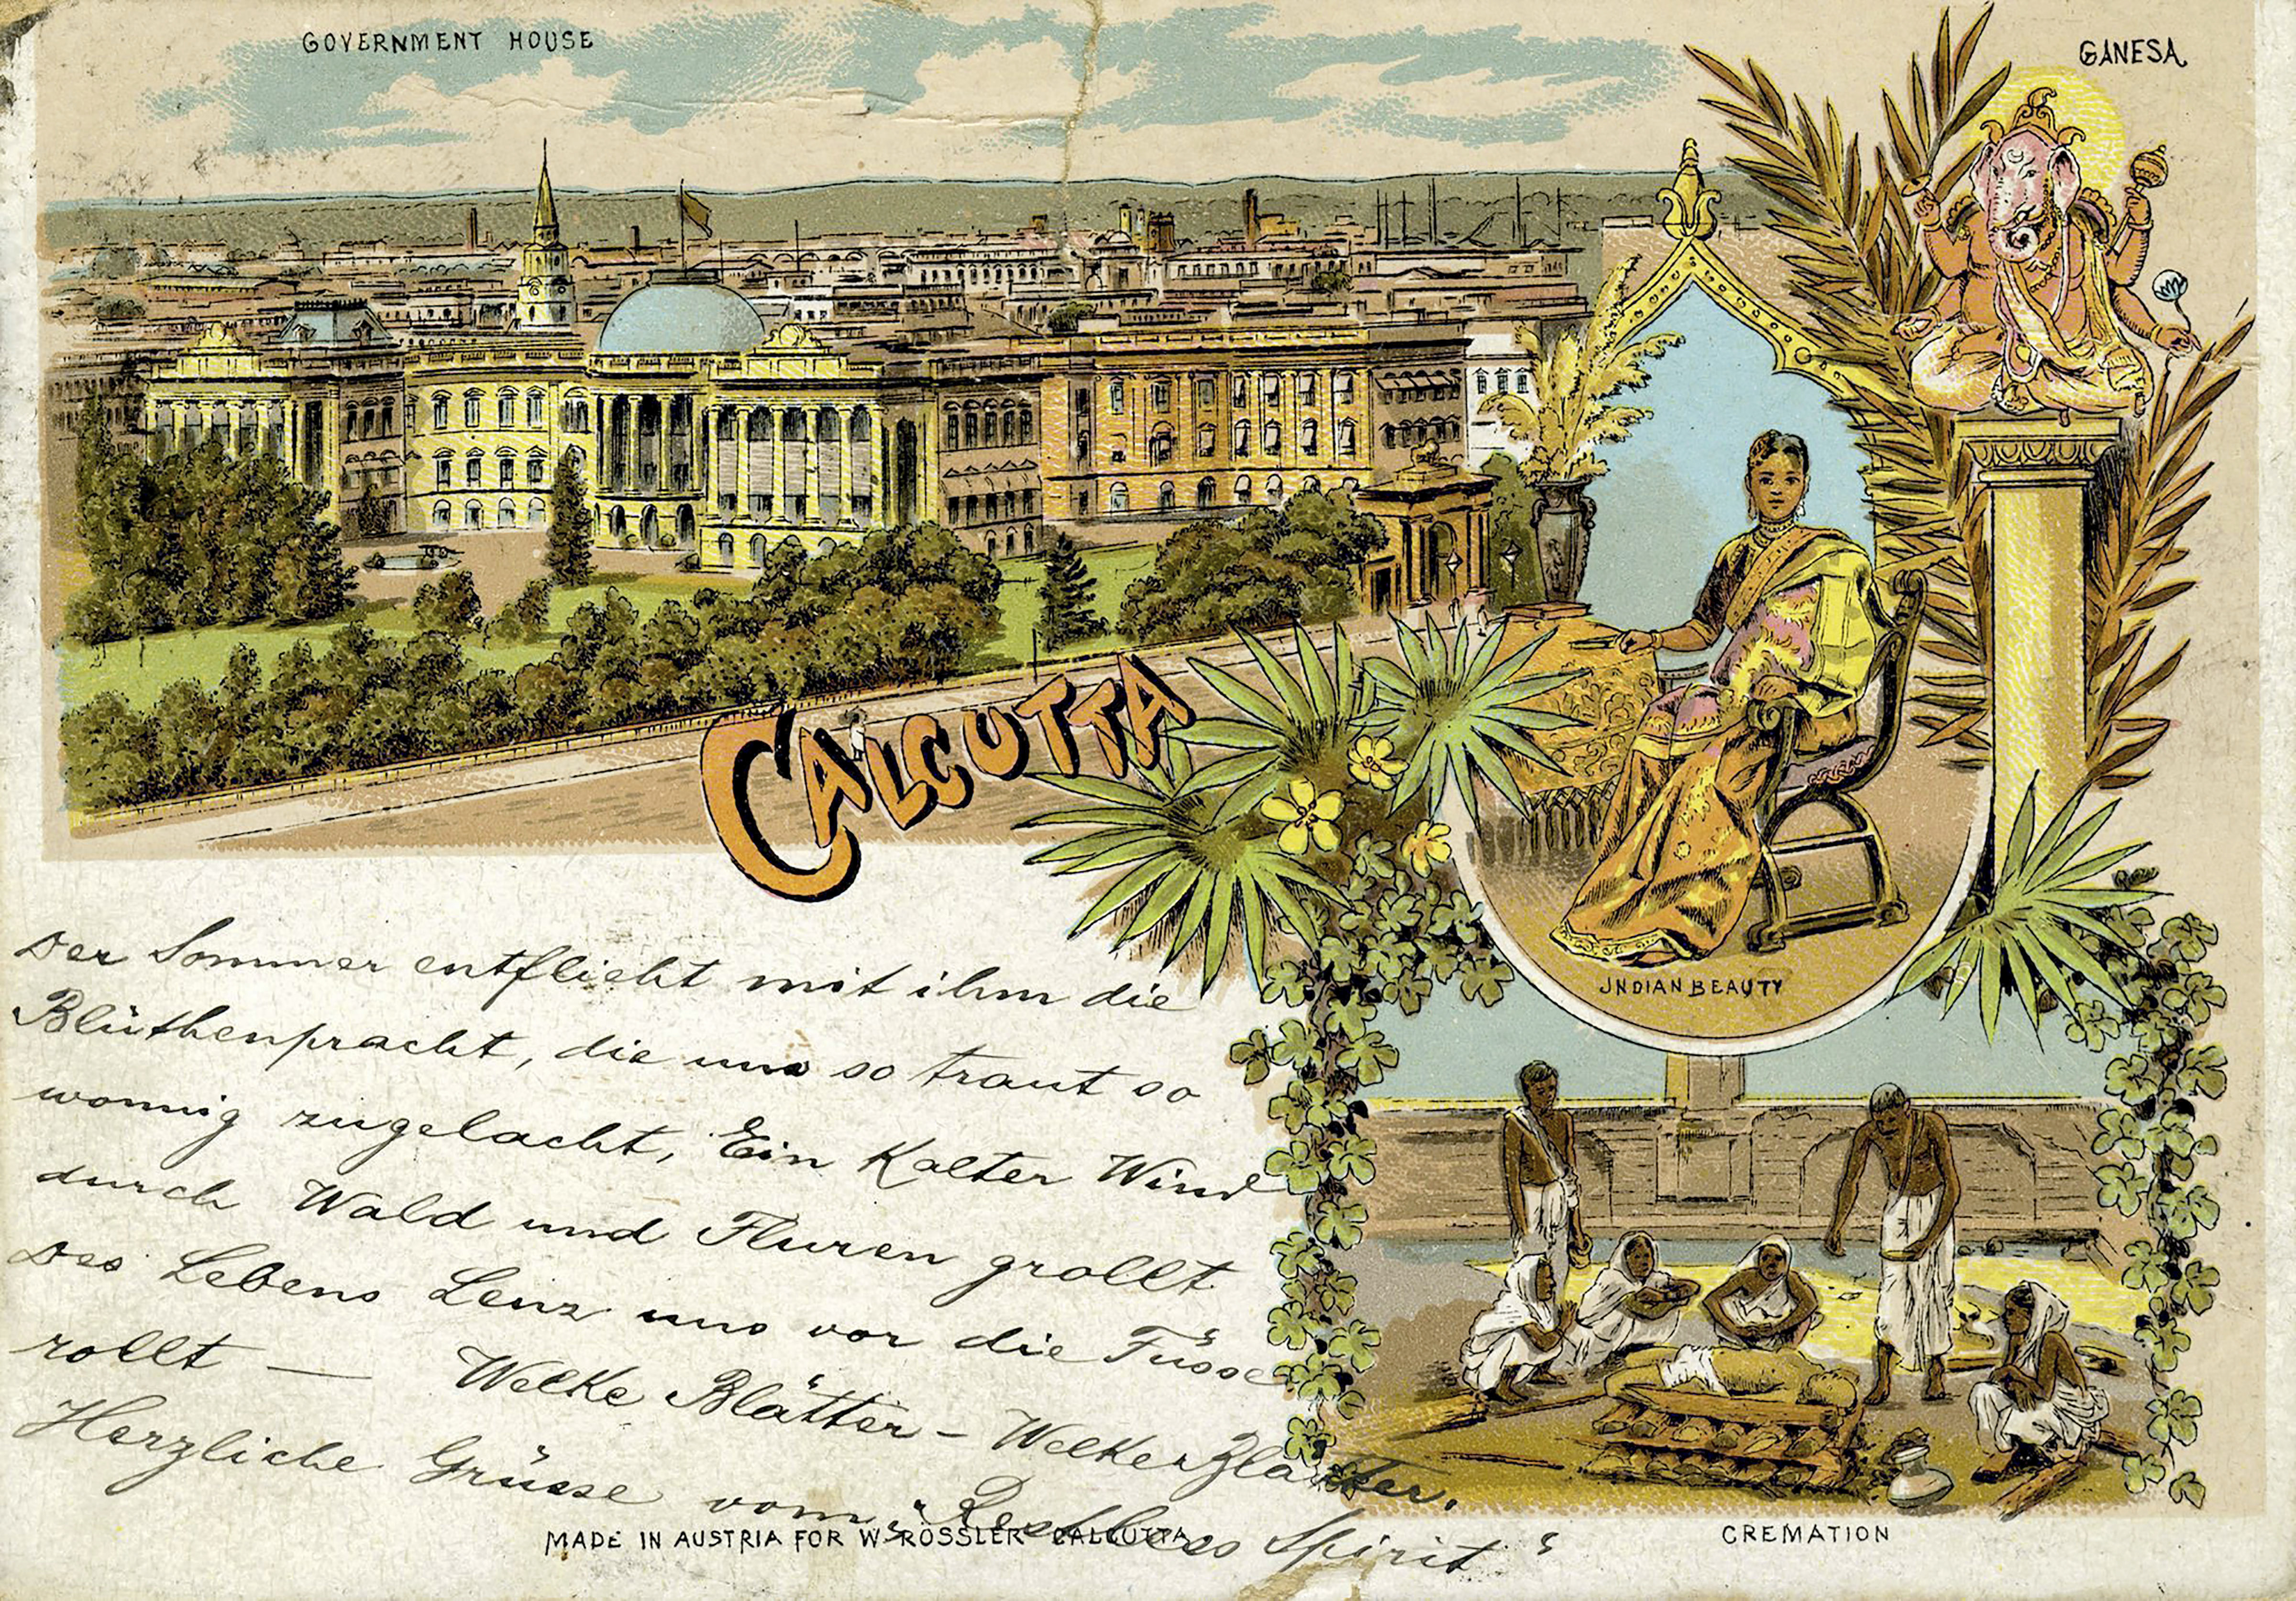 Postcard dating 1890s, shared by Art Heritage Gallery, where it is on display as part of an exhibition of rare vintage postcards, in New Delhi - PTI